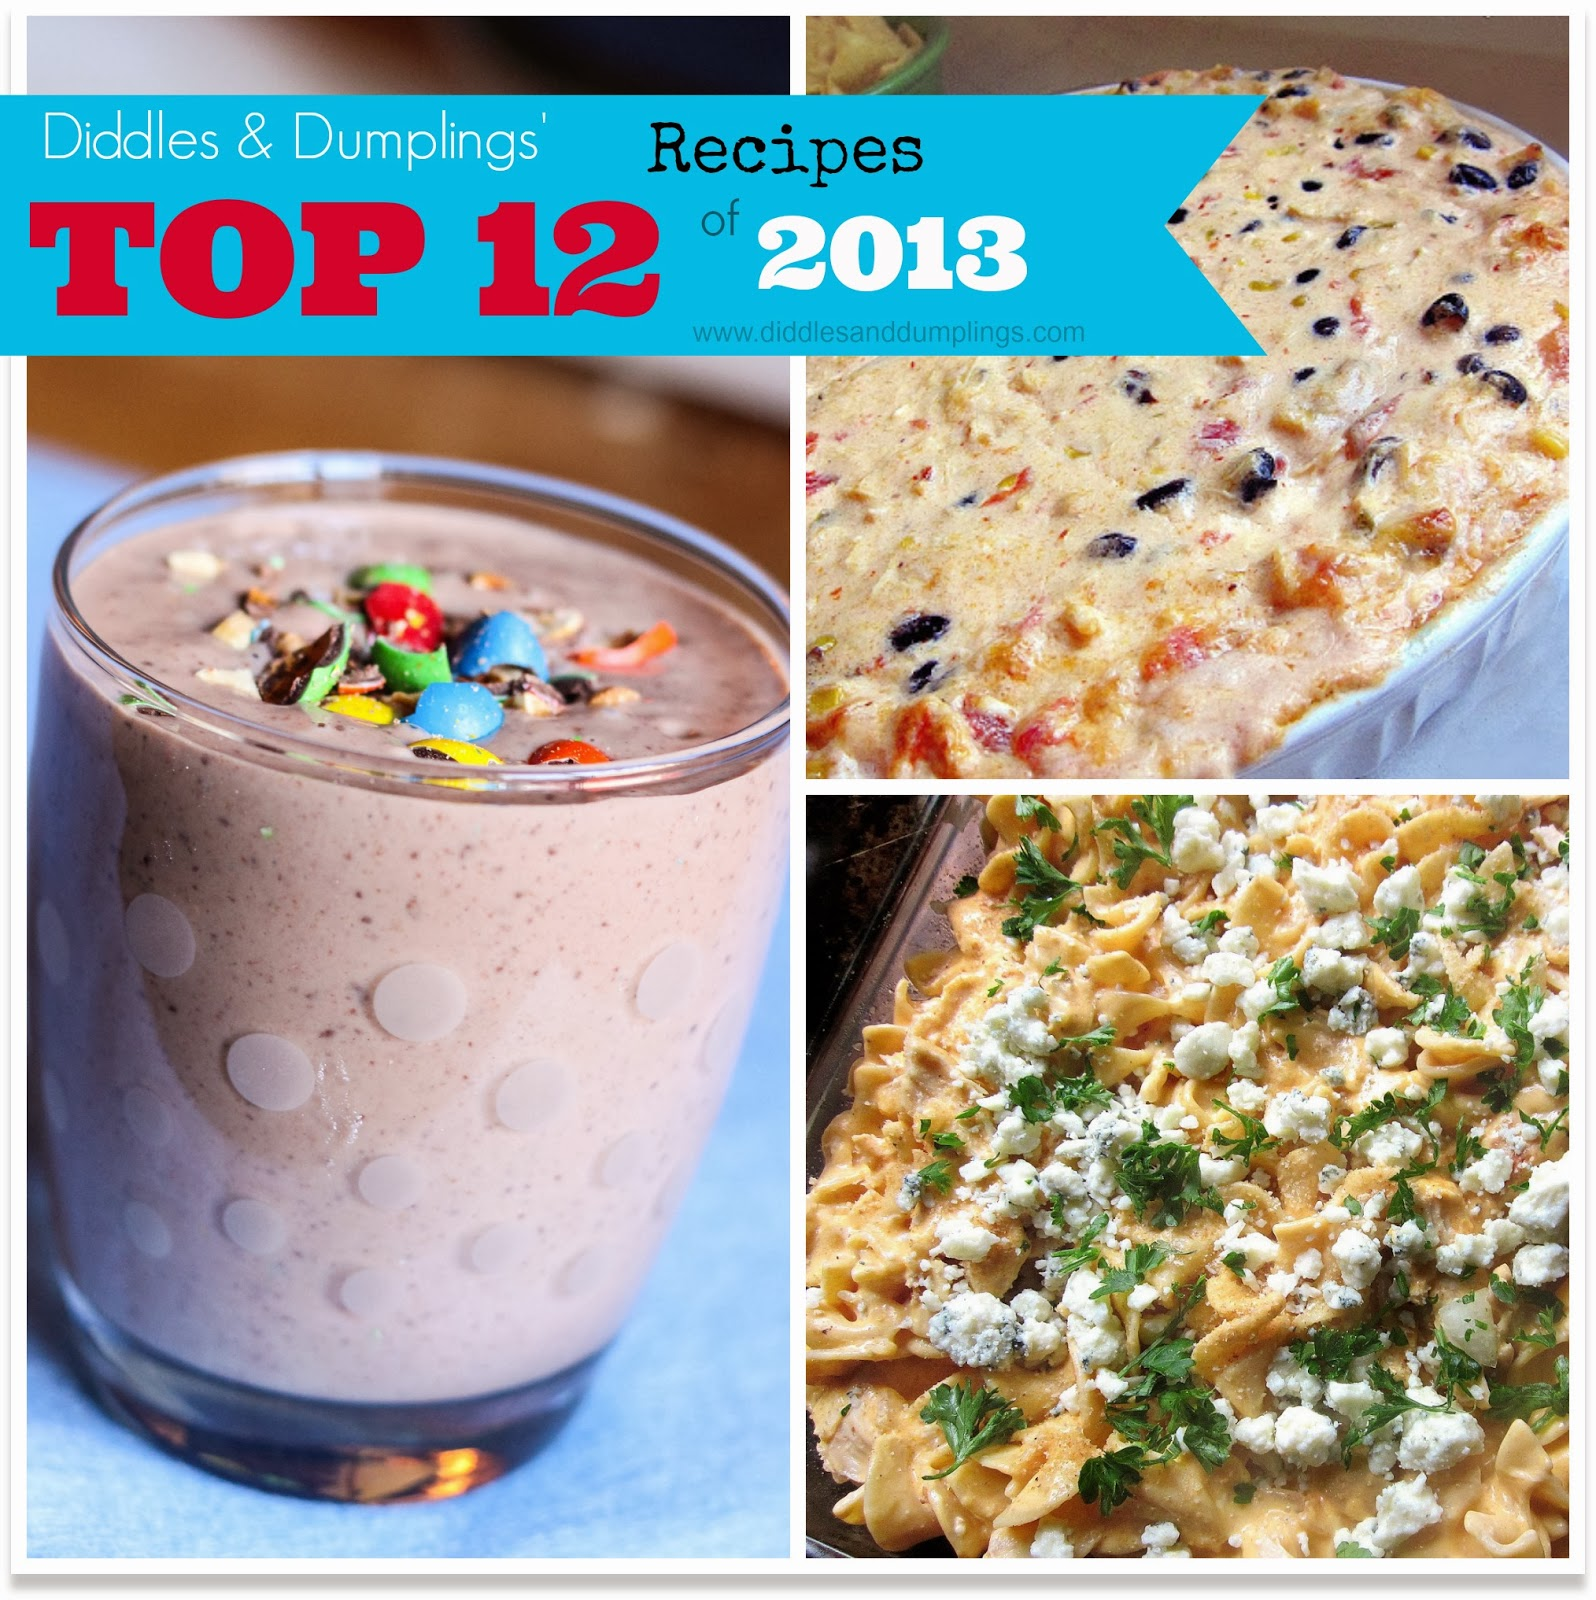 Diddles and dumplings diddles dumplings top 12 recipes of 2013 2013 was by far one of my favorite years food wise for the blog some of my best recipes came about last year and you all were so encouraging and forumfinder Images